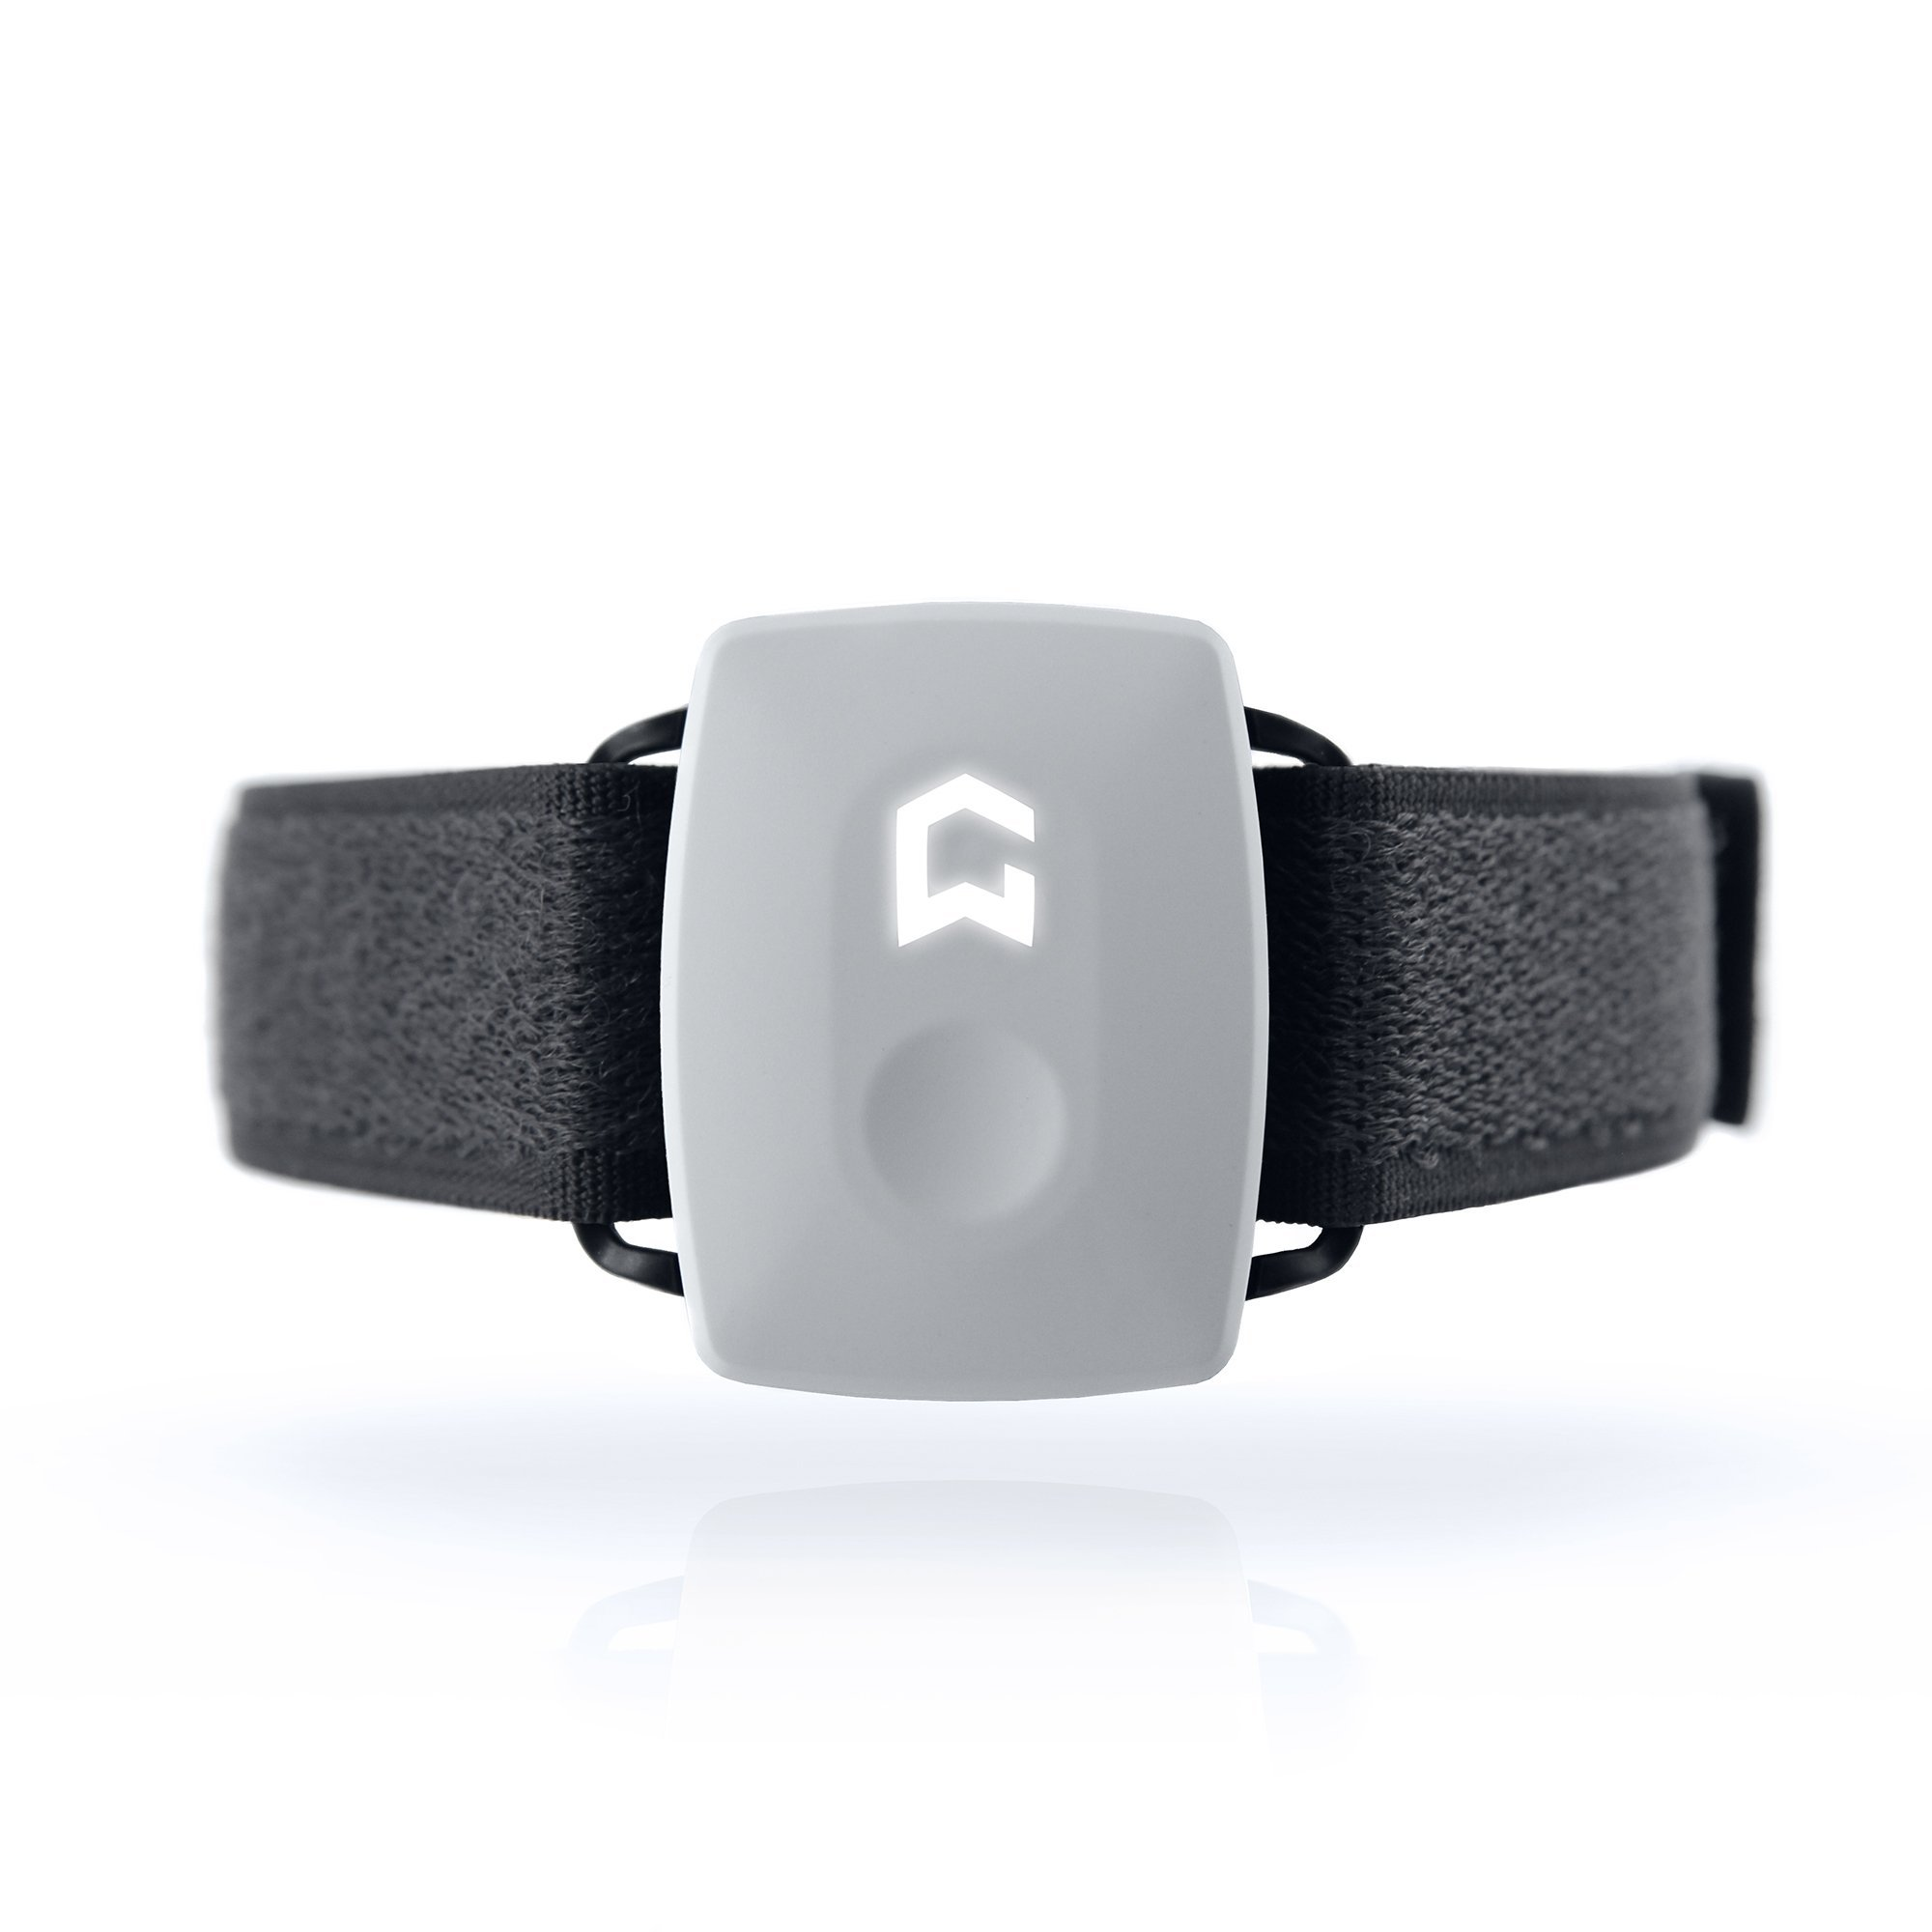 Ultimate Fitness Exercise Tracker Watch That Monitors All Workout and Sports Activity - by GYMWATCH® (Cool White)